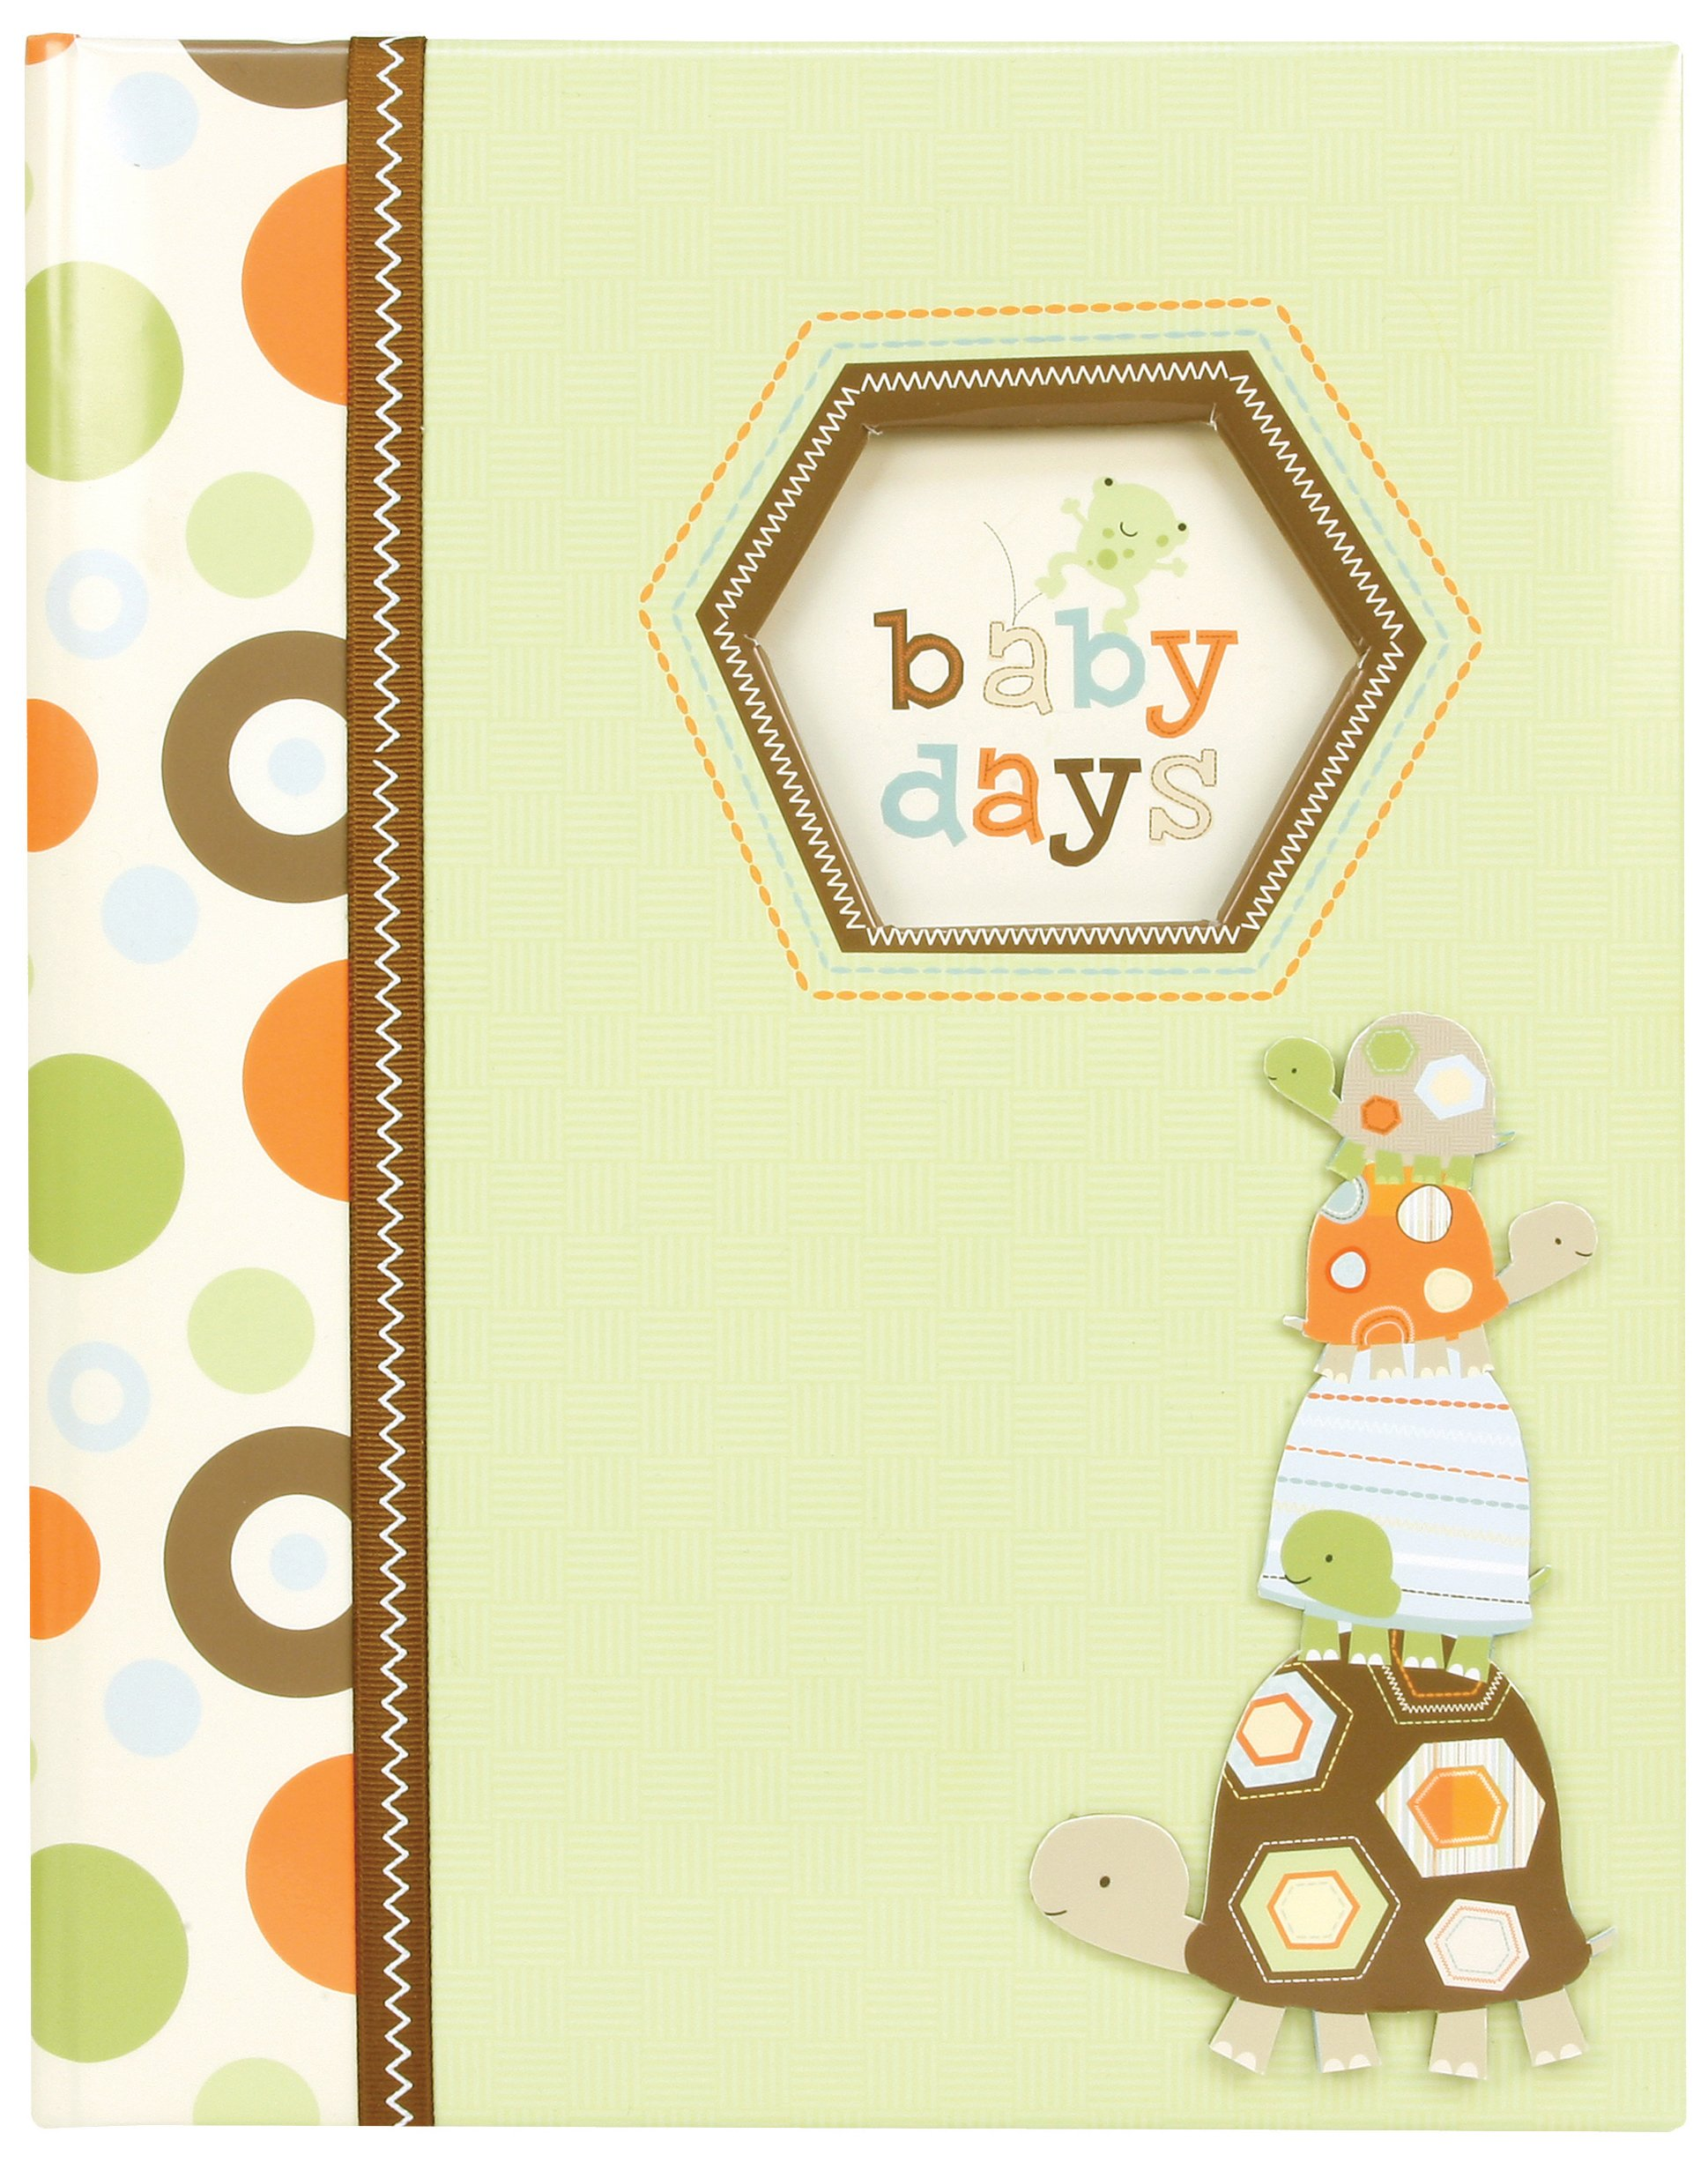 Carter's Green Polka Dot Animal My First Years Bound Memory Book for Babies, 9'' L x 11.125'' H, 60 Pages